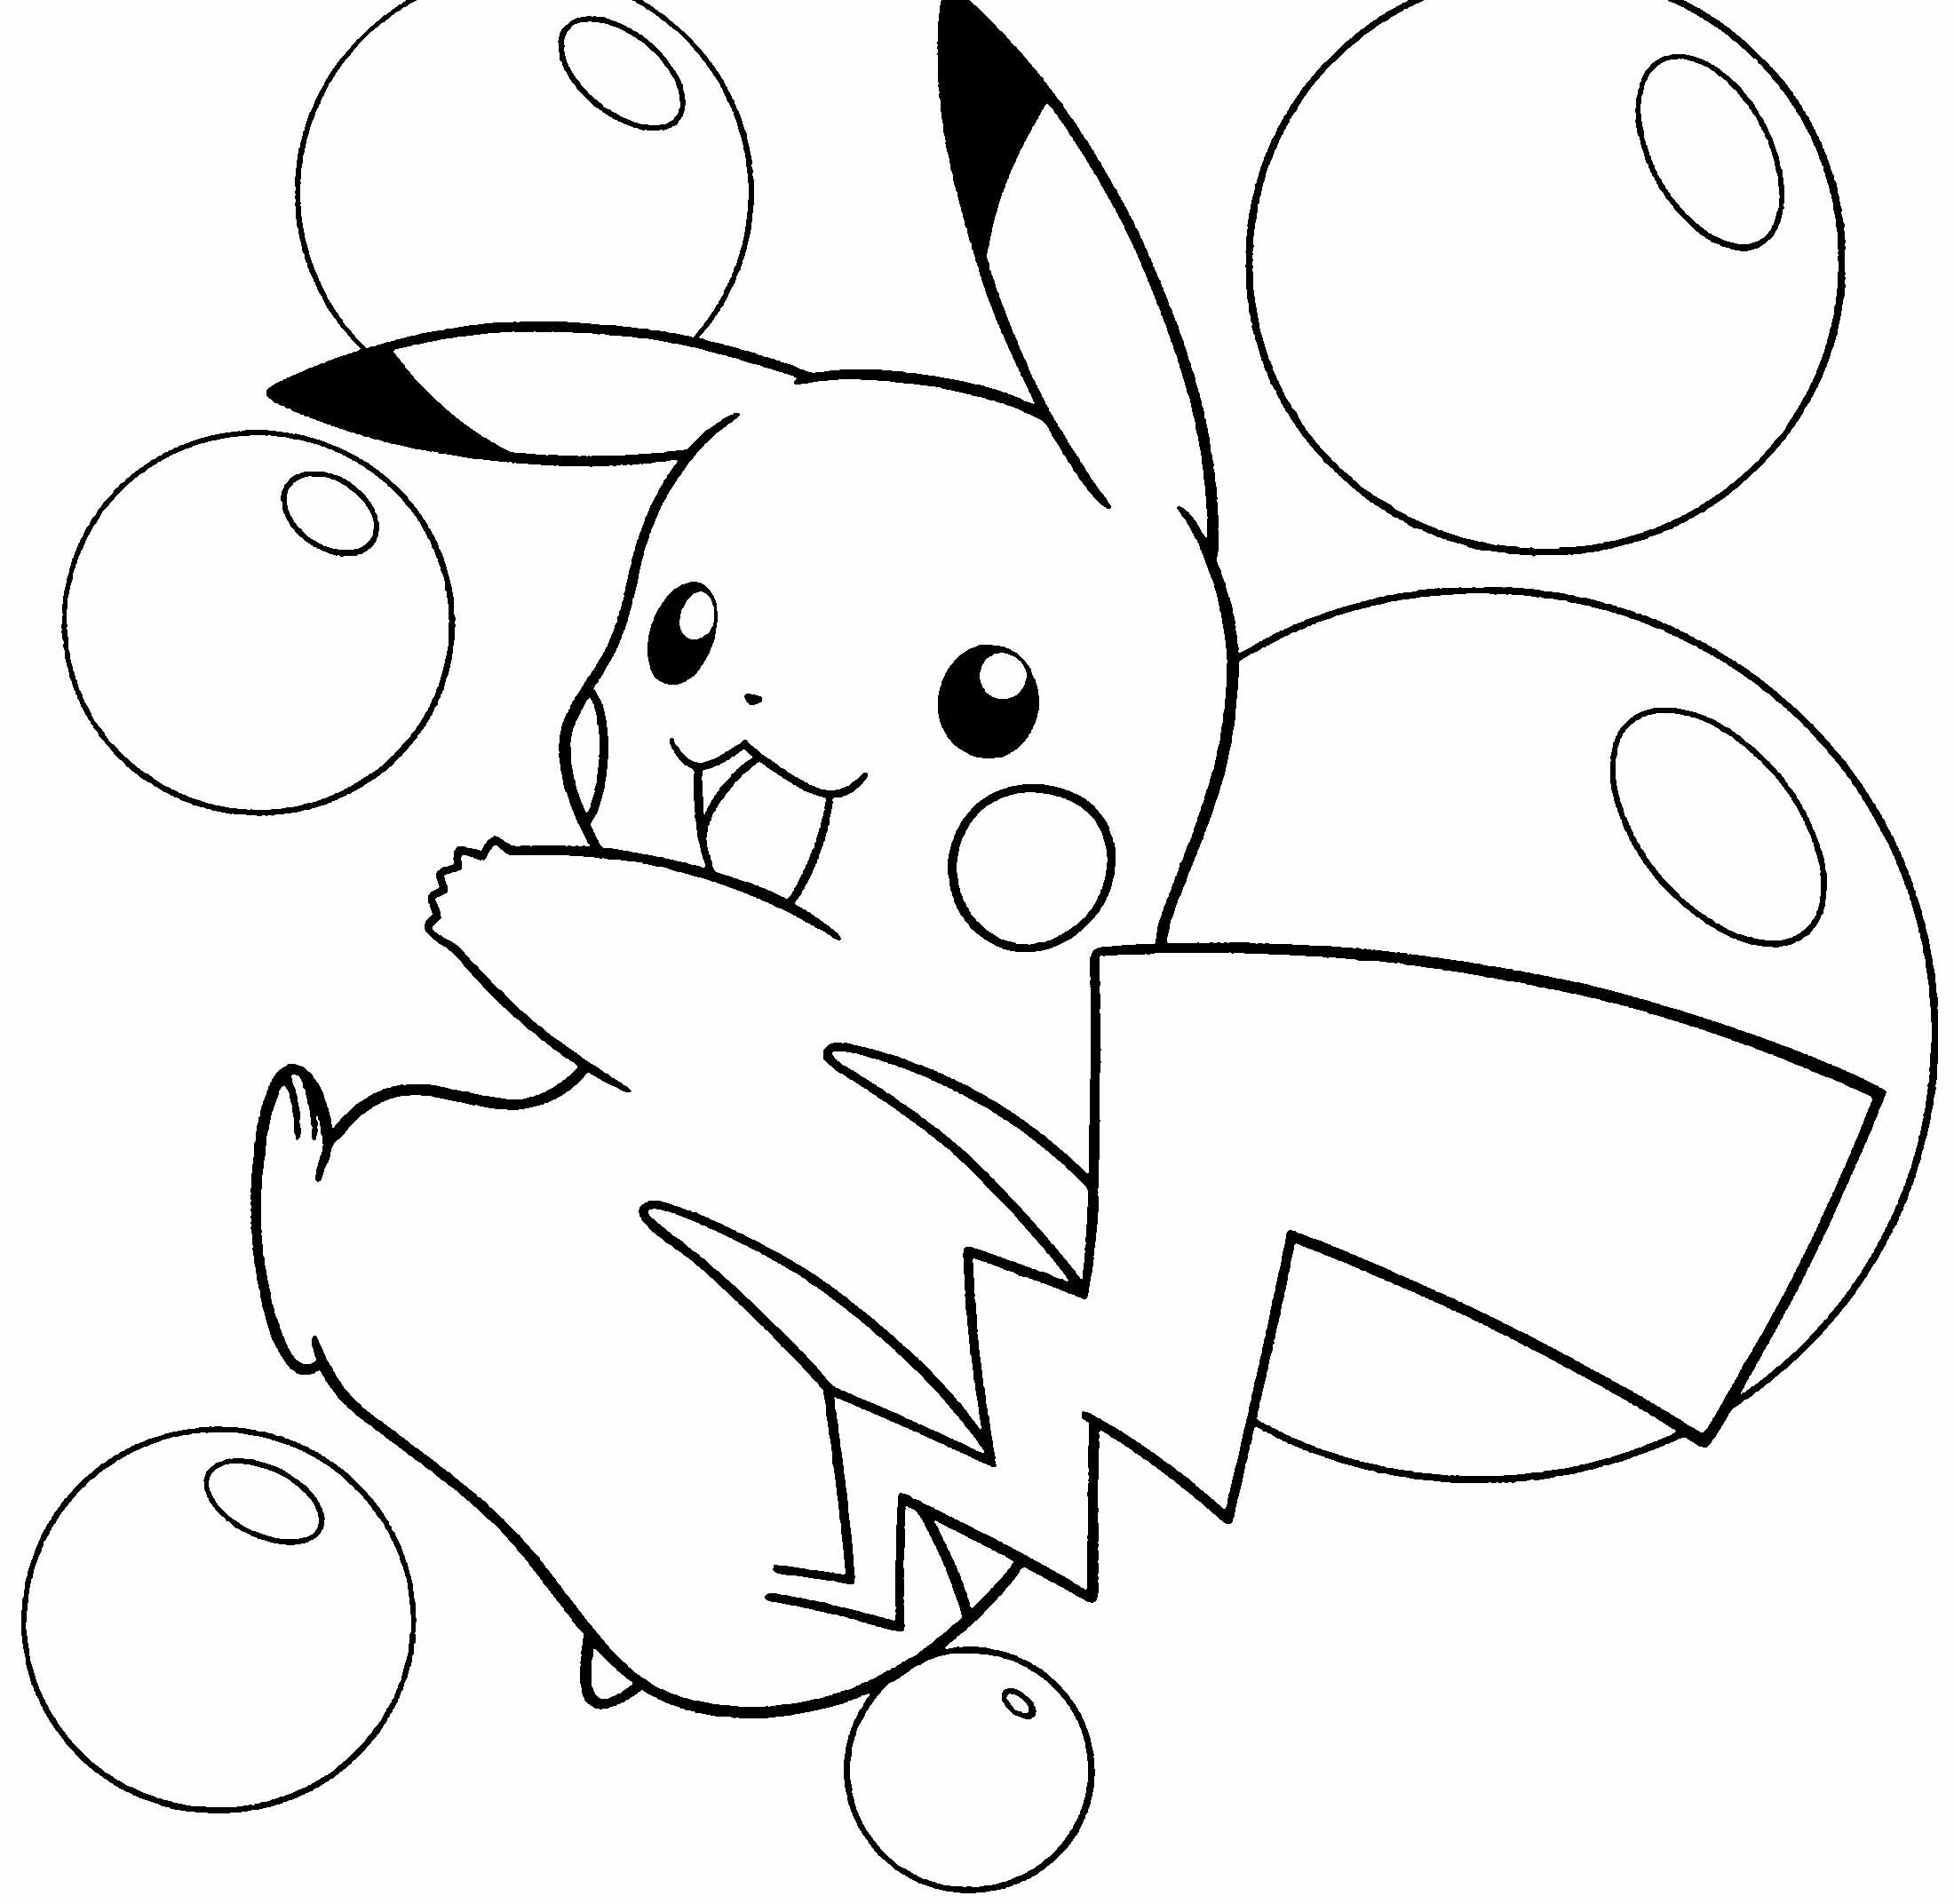 Pokemon Thunderbolt Attack 10 Pikachu Coloring Pages Print